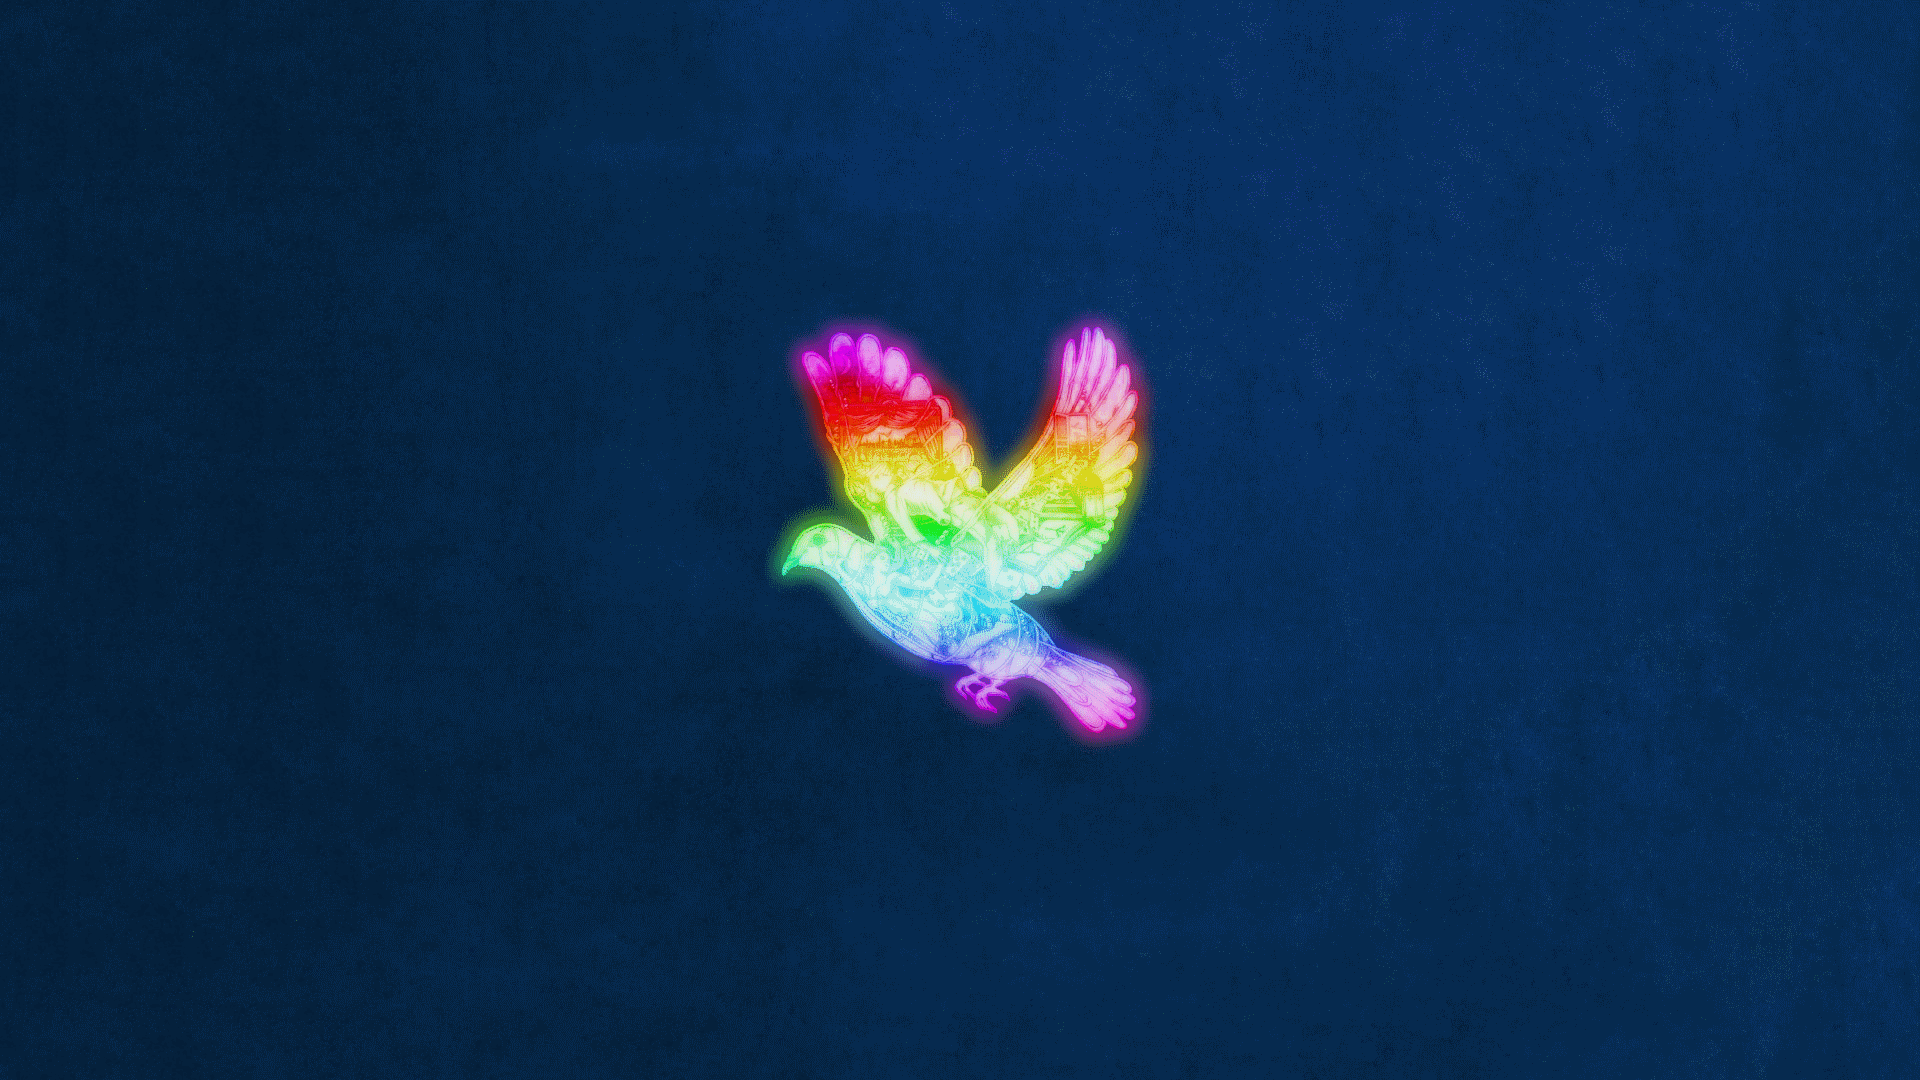 Coldplay Wallpapers Top Free Coldplay Backgrounds